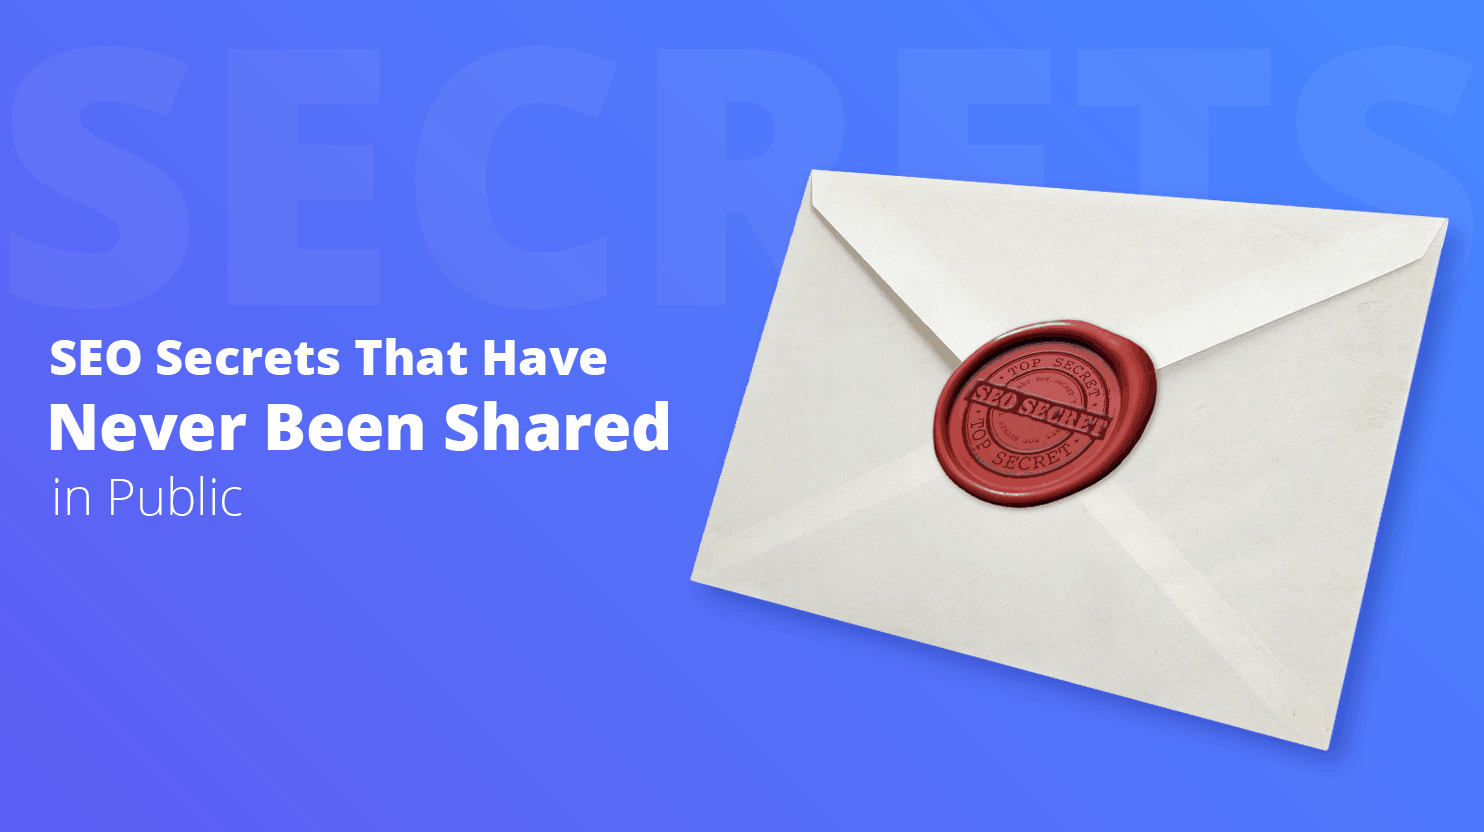 SEO Secrets That Have Never Been Shared in Public